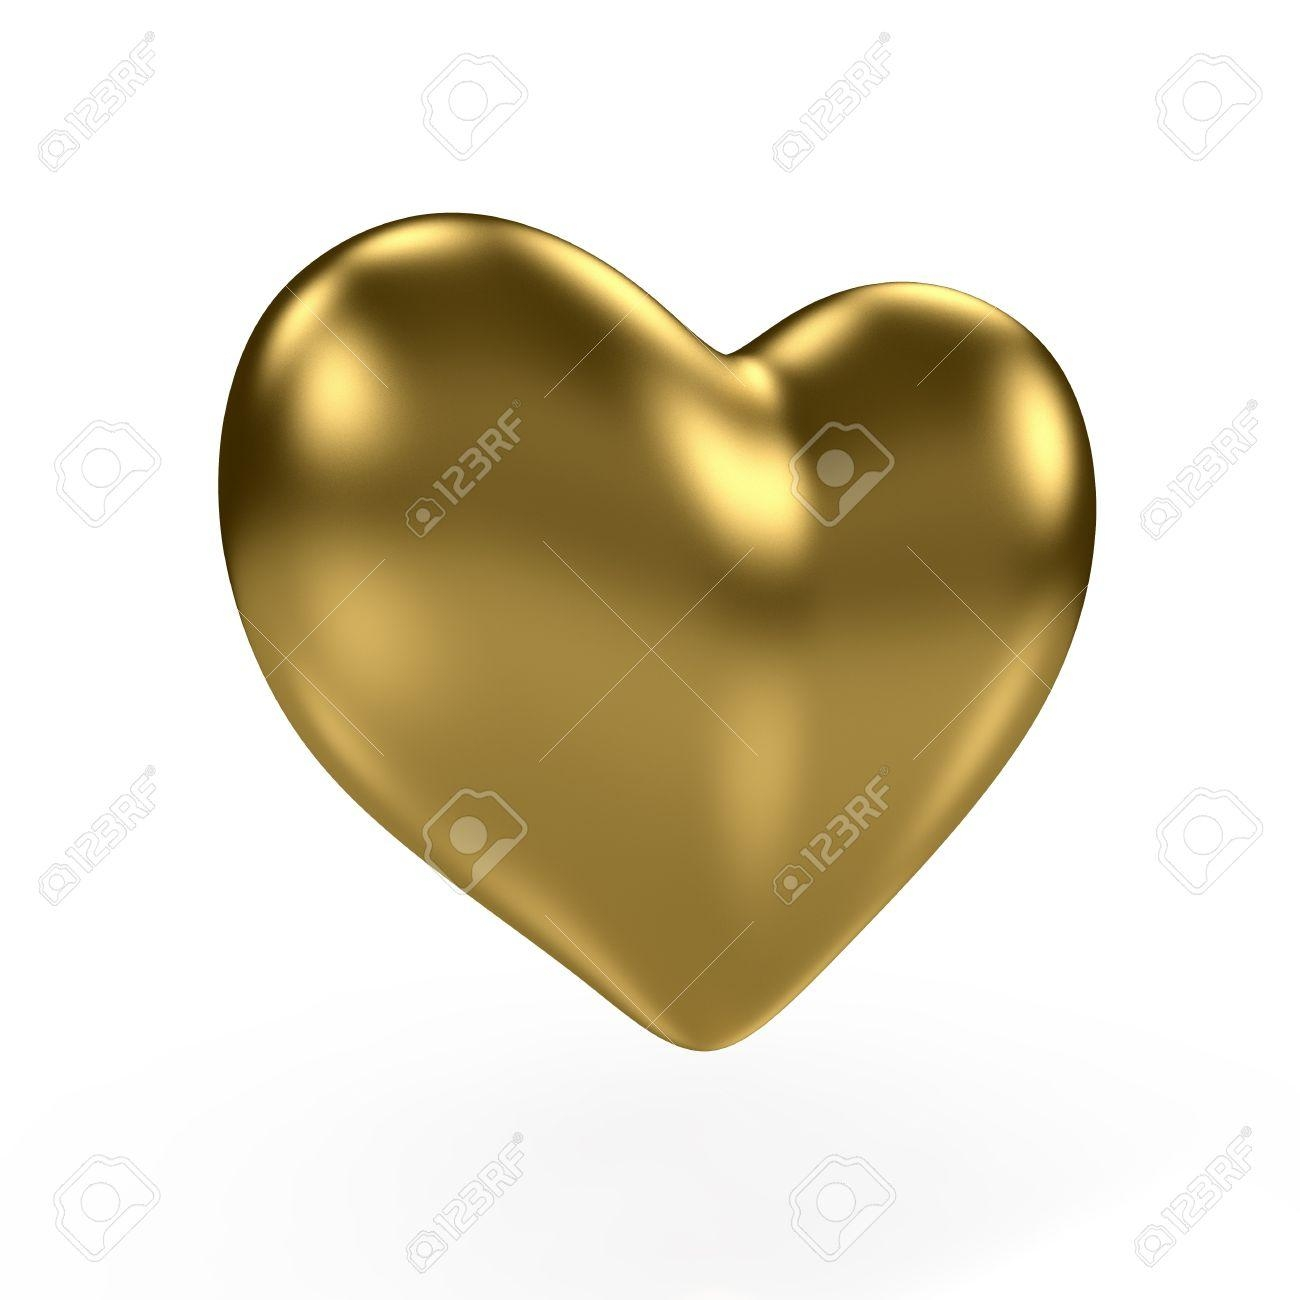 3D Render Of Gold Heart On White Background Stock Photo, Picture For Gold Heart Mirror (Image 3 of 20)